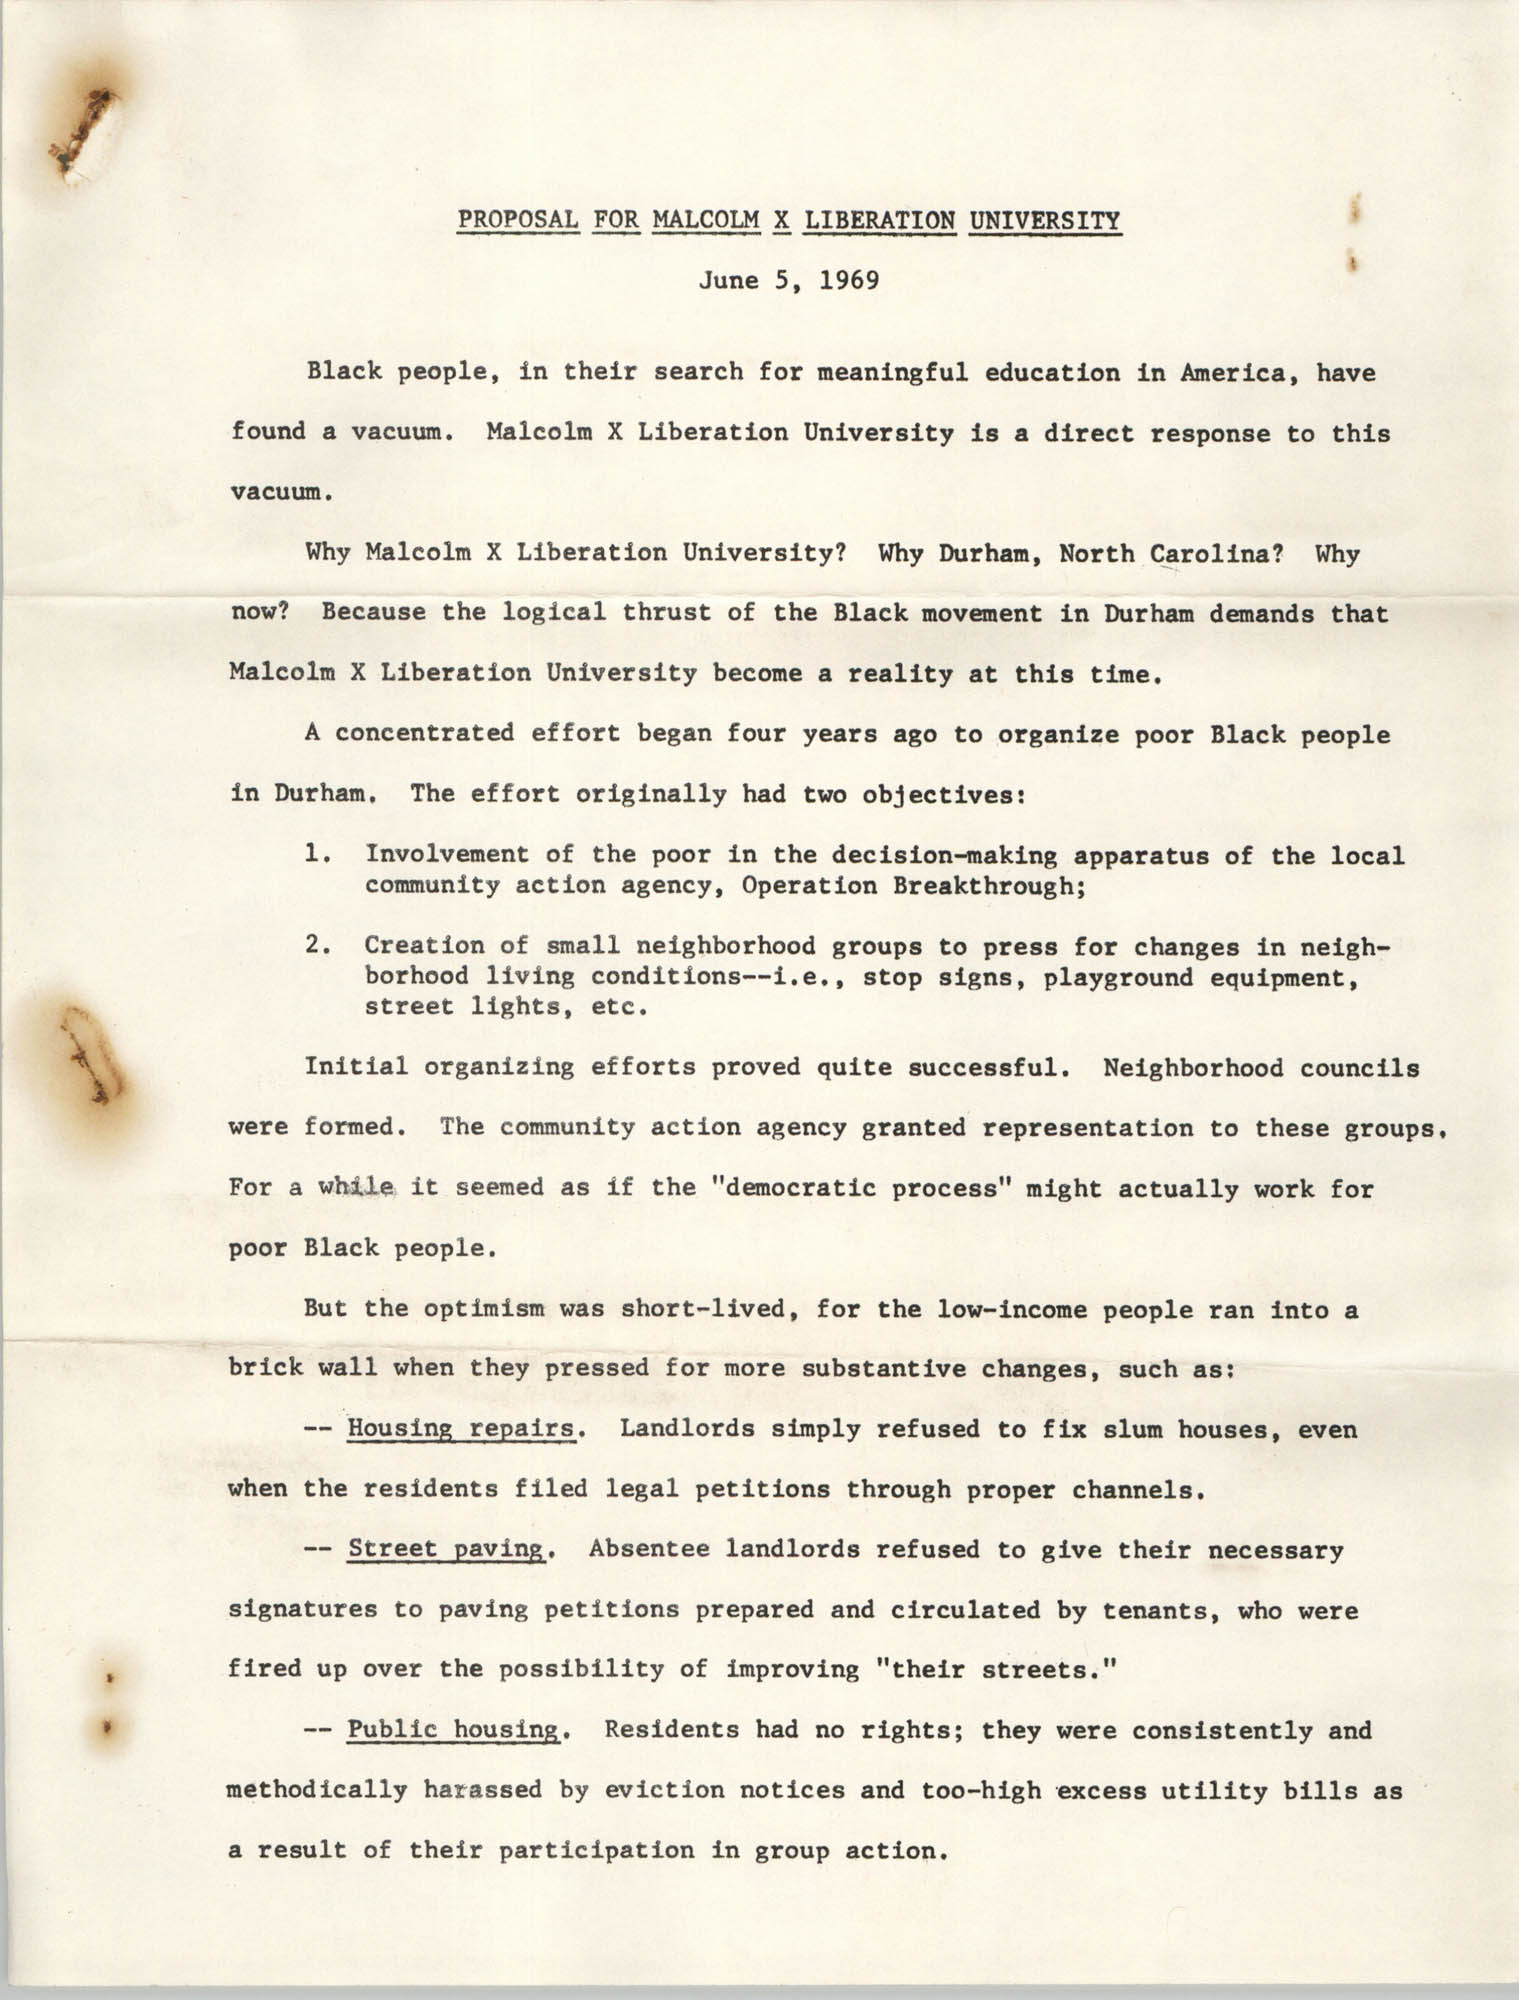 Proposal for Malcolm X Liberation University, June 5, 1969